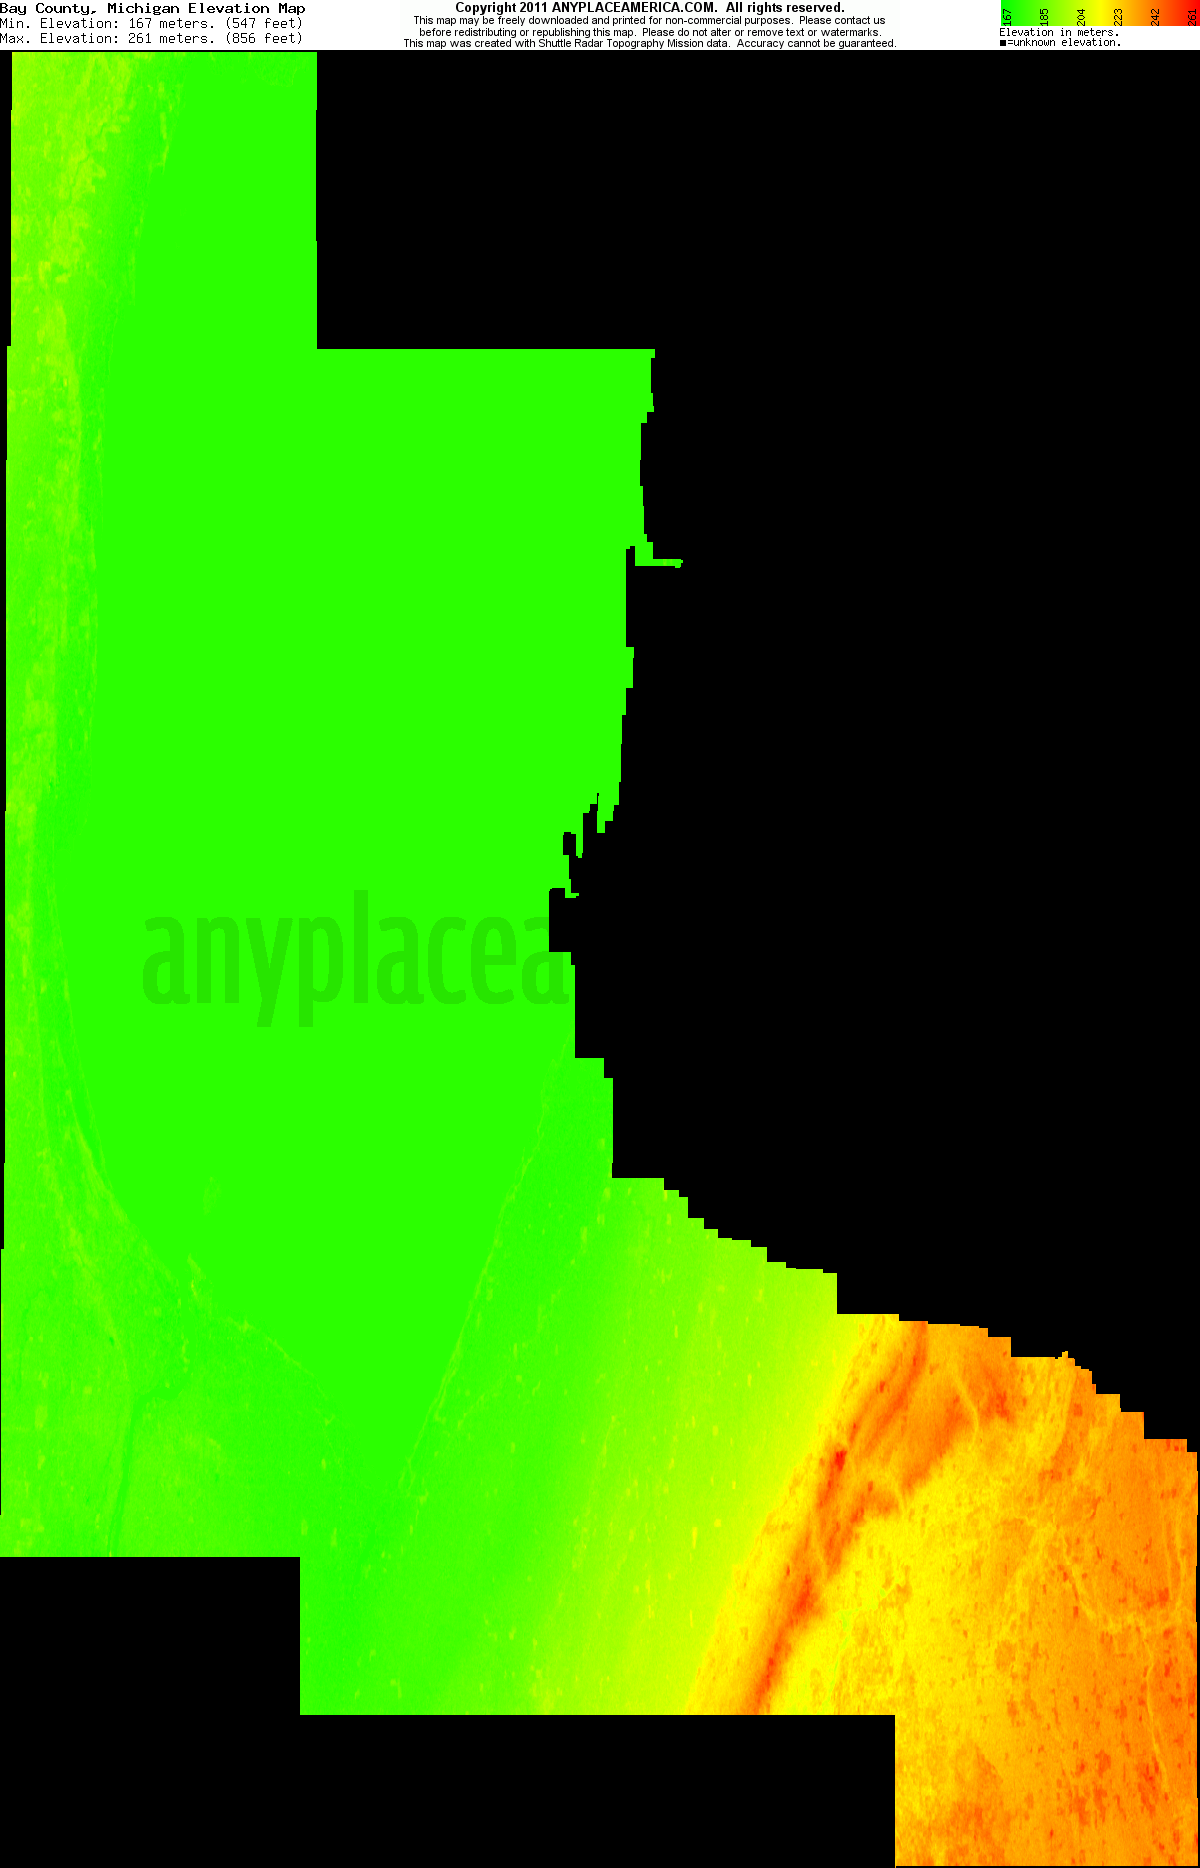 Michigan bay county auburn - Download Bay County Elevation Map